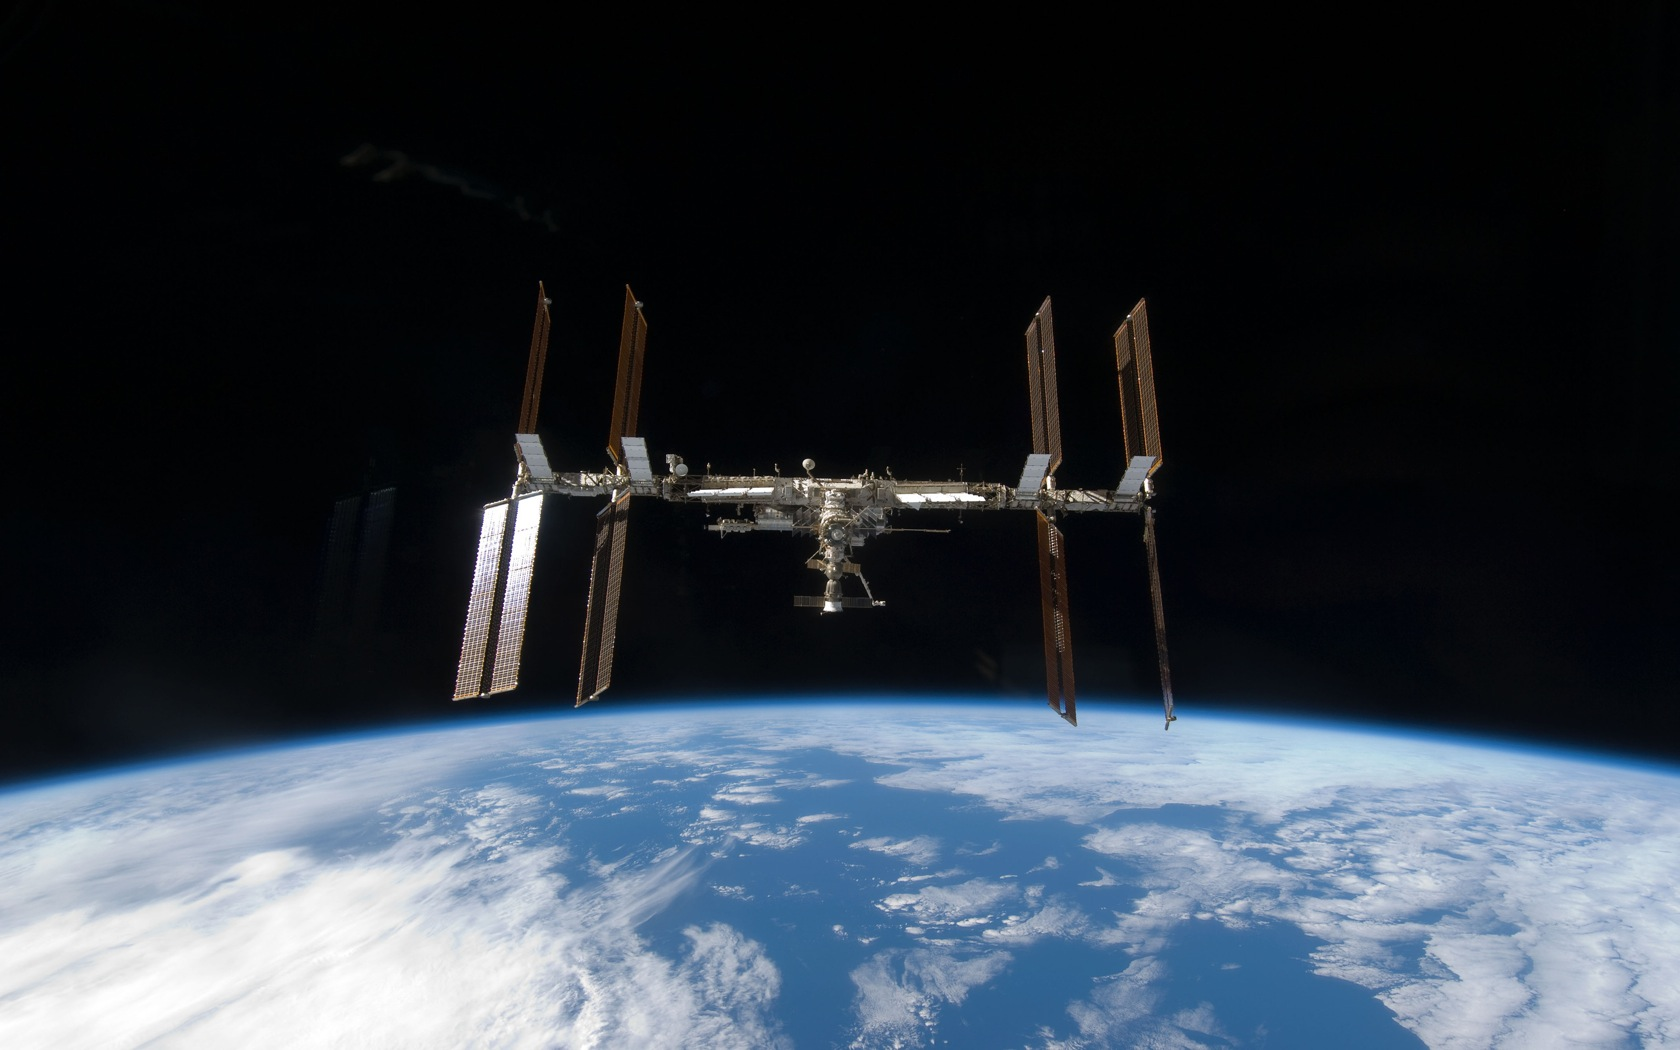 Iss Wallpapers Hd: 1680x1050px International Space Station Wallpaper